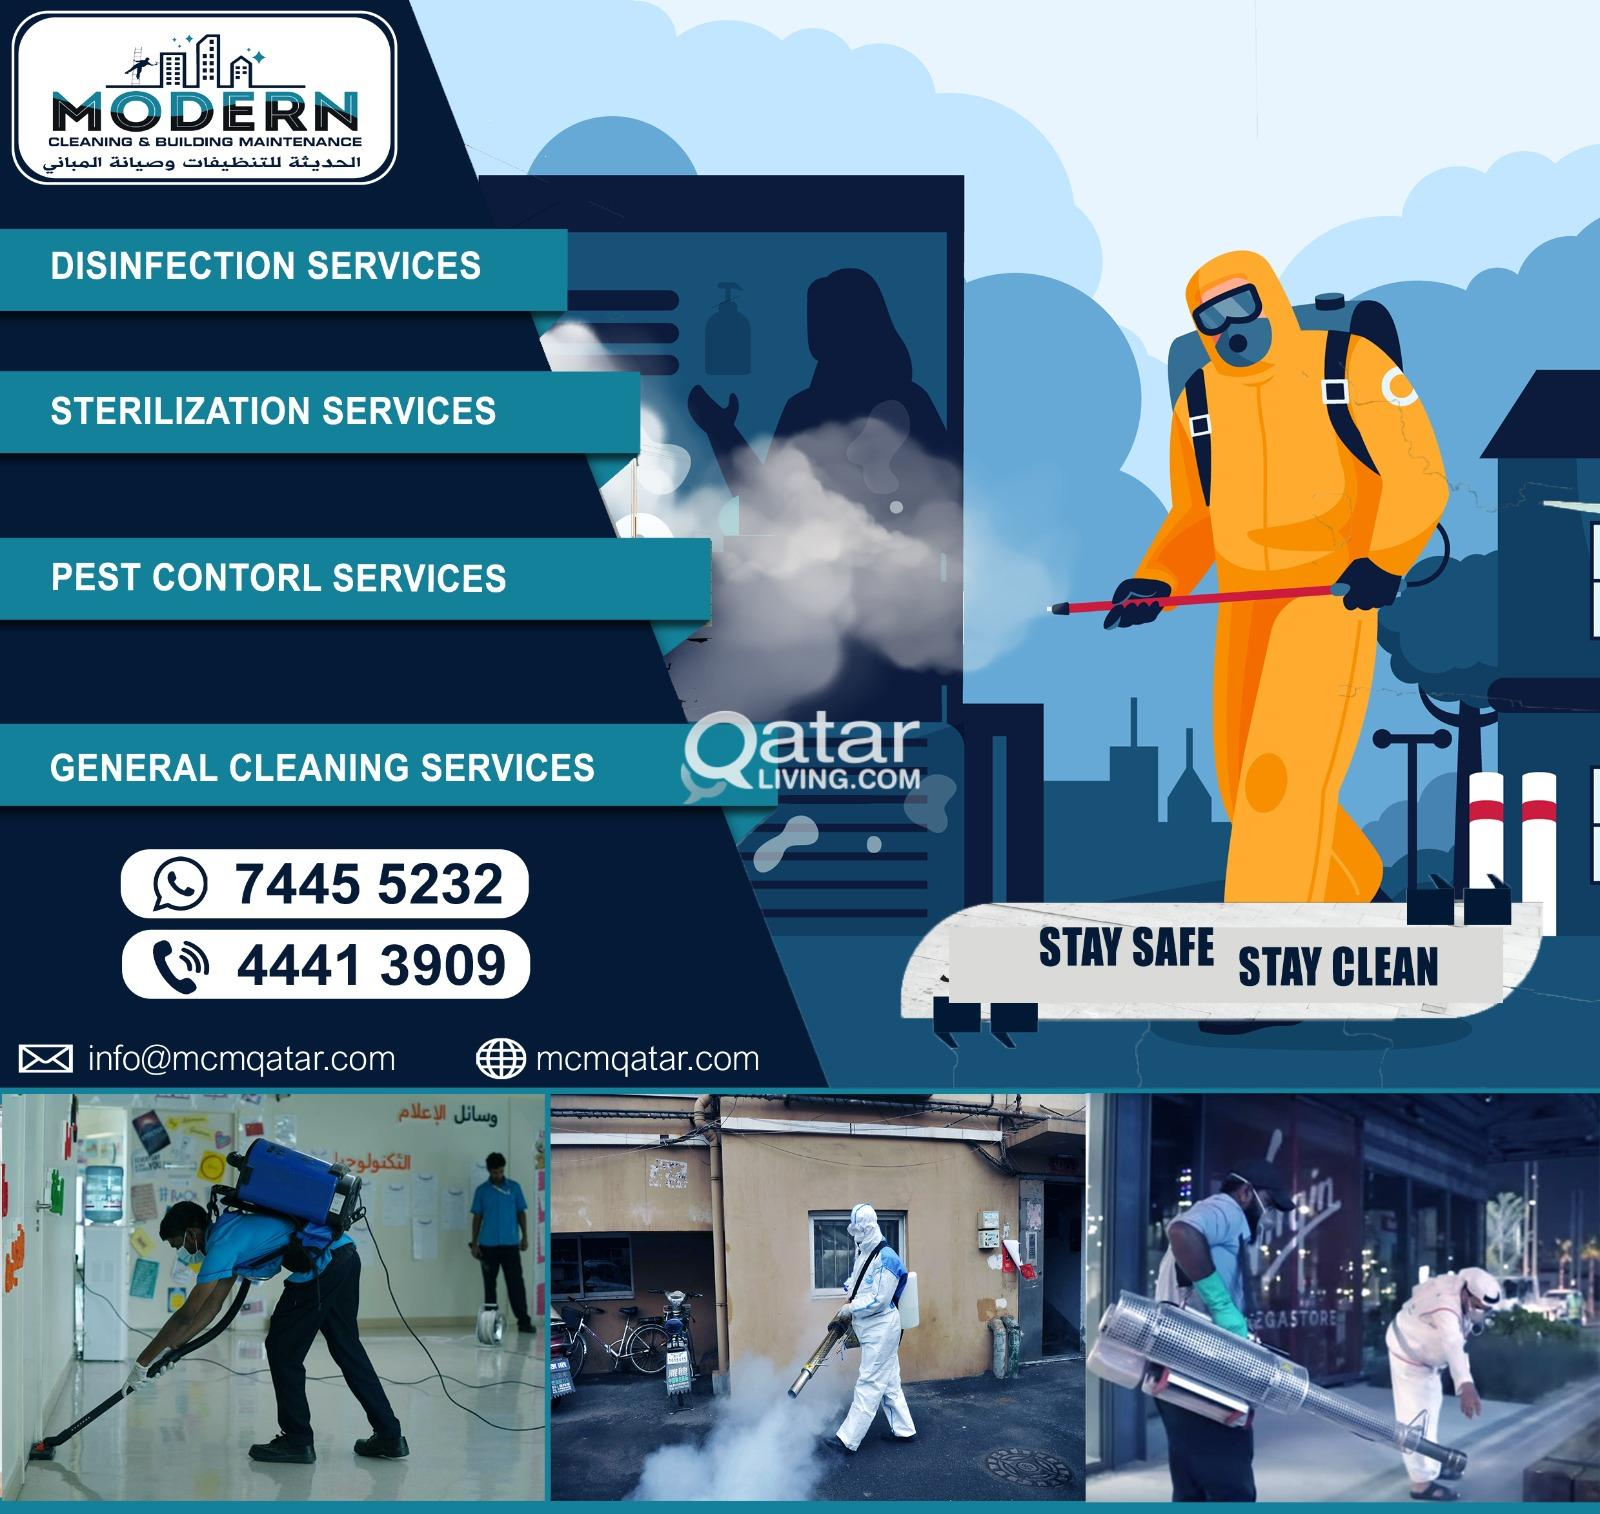 DISINFECTION & GENERAL CLEANING SERVICES